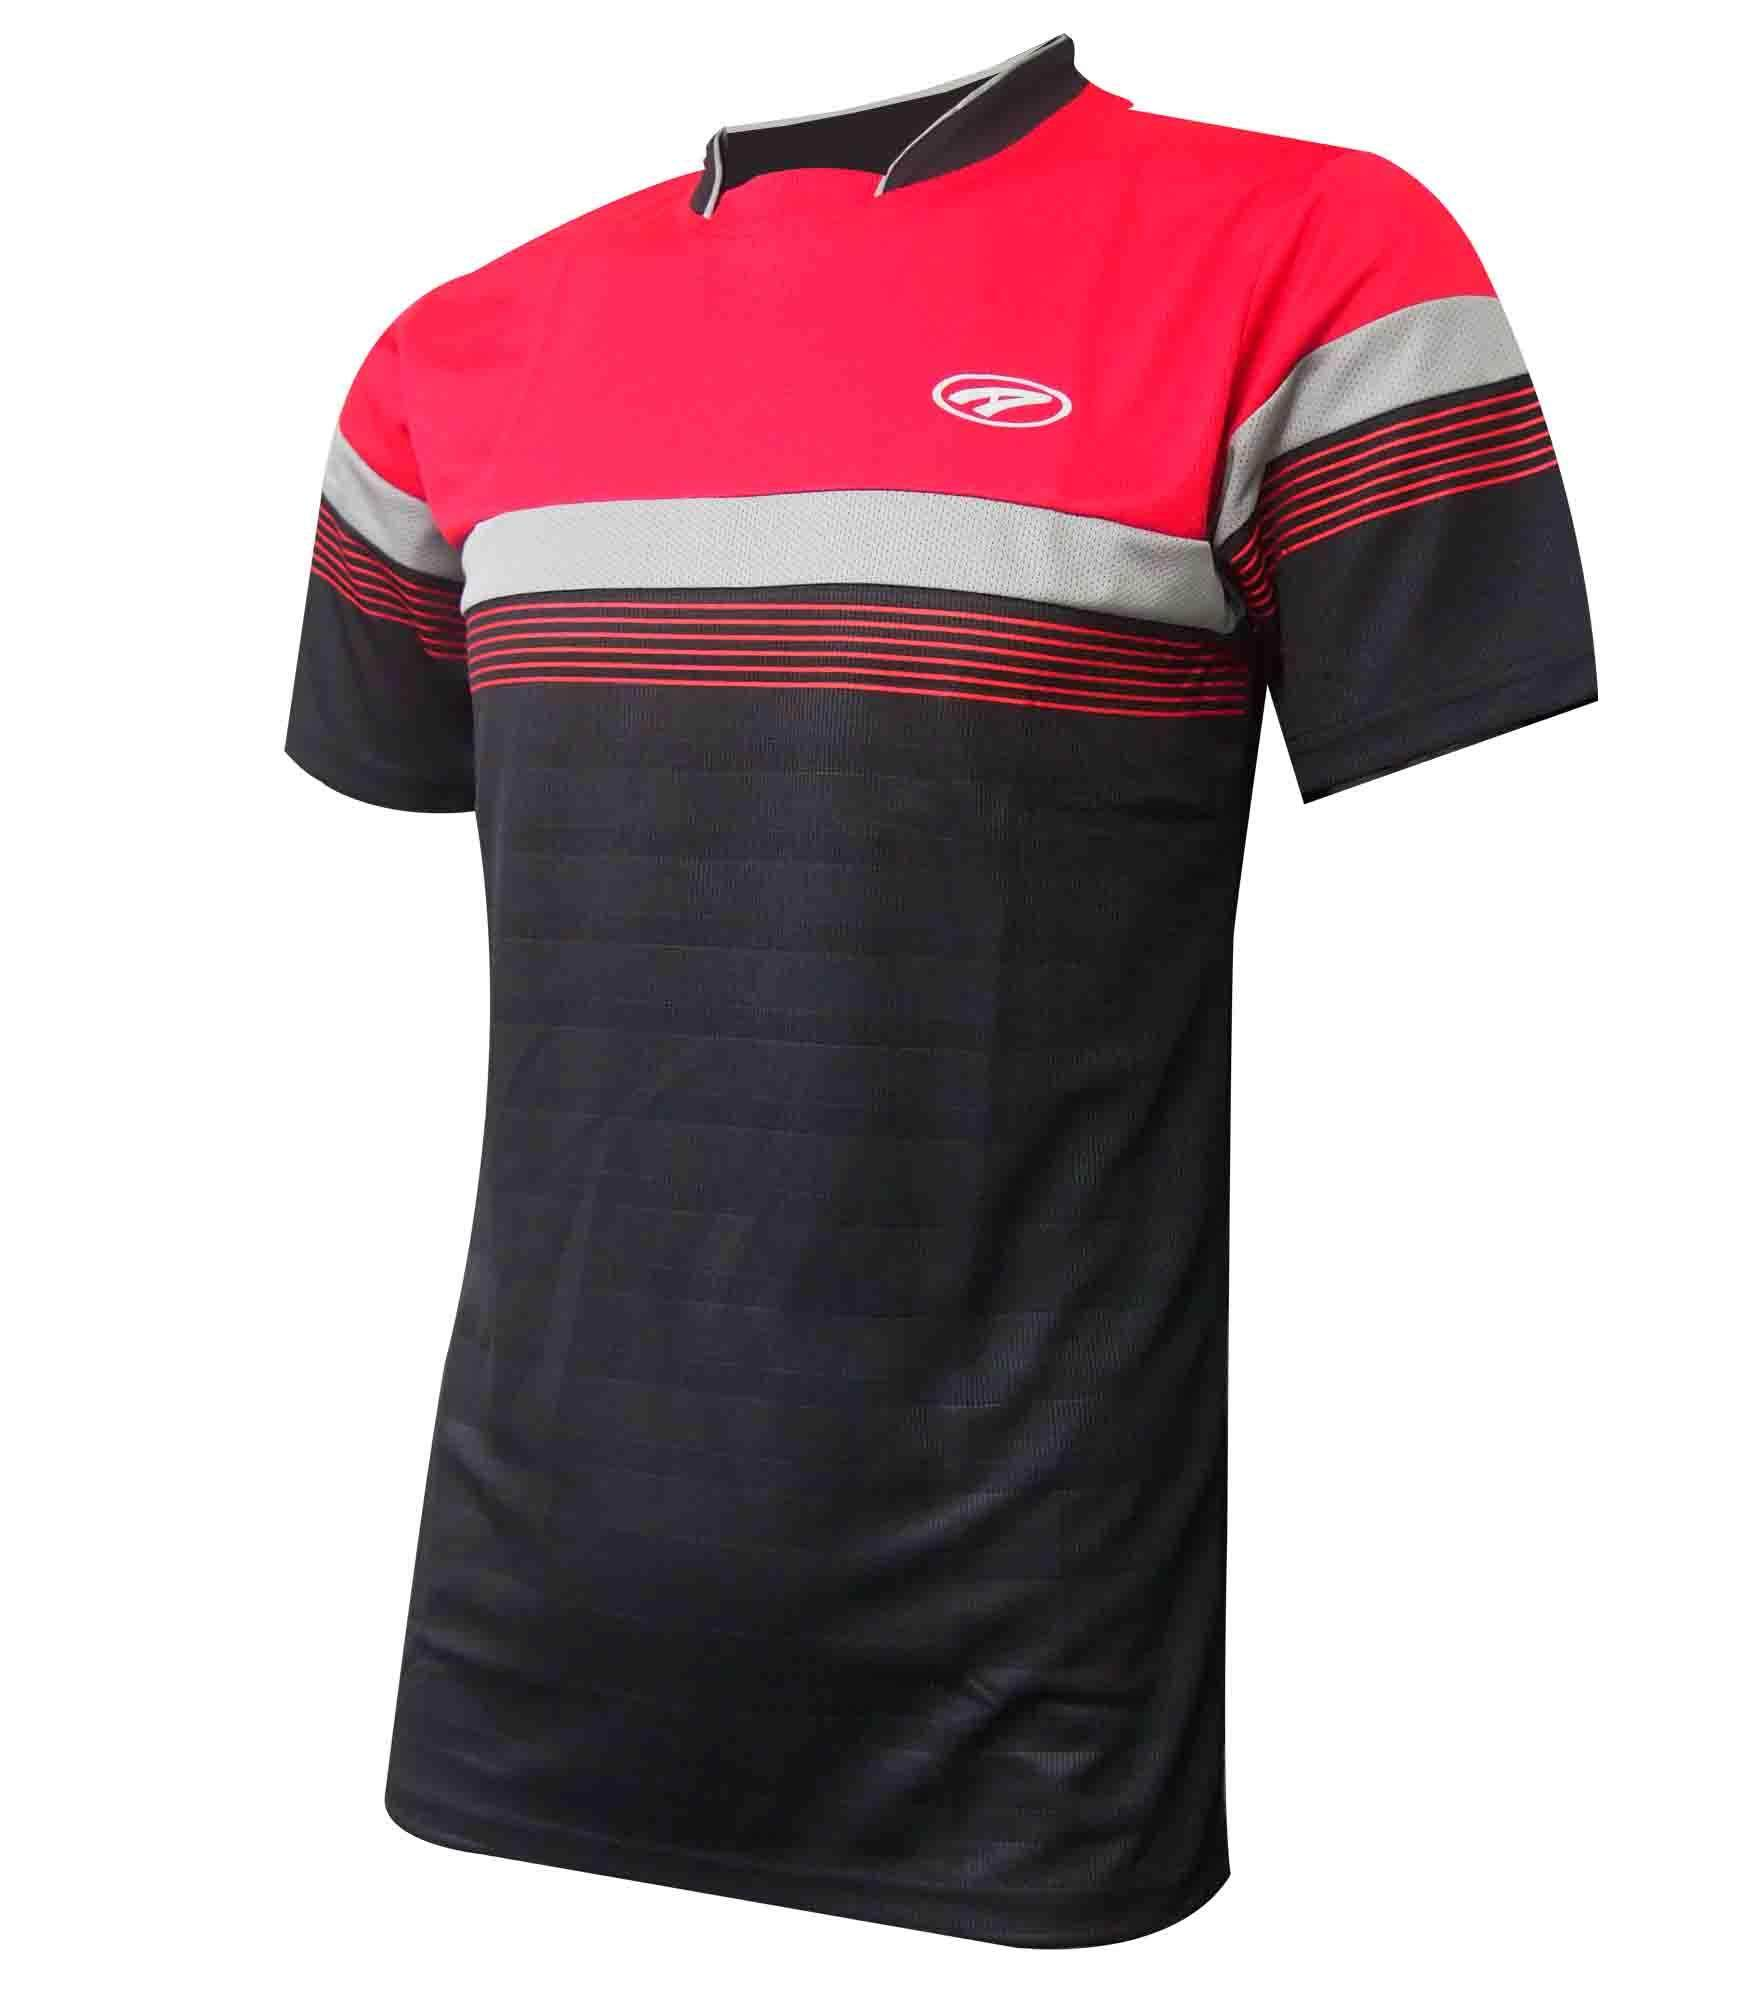 Ambros Mandarin Collar Jersey for Men - Red/Black